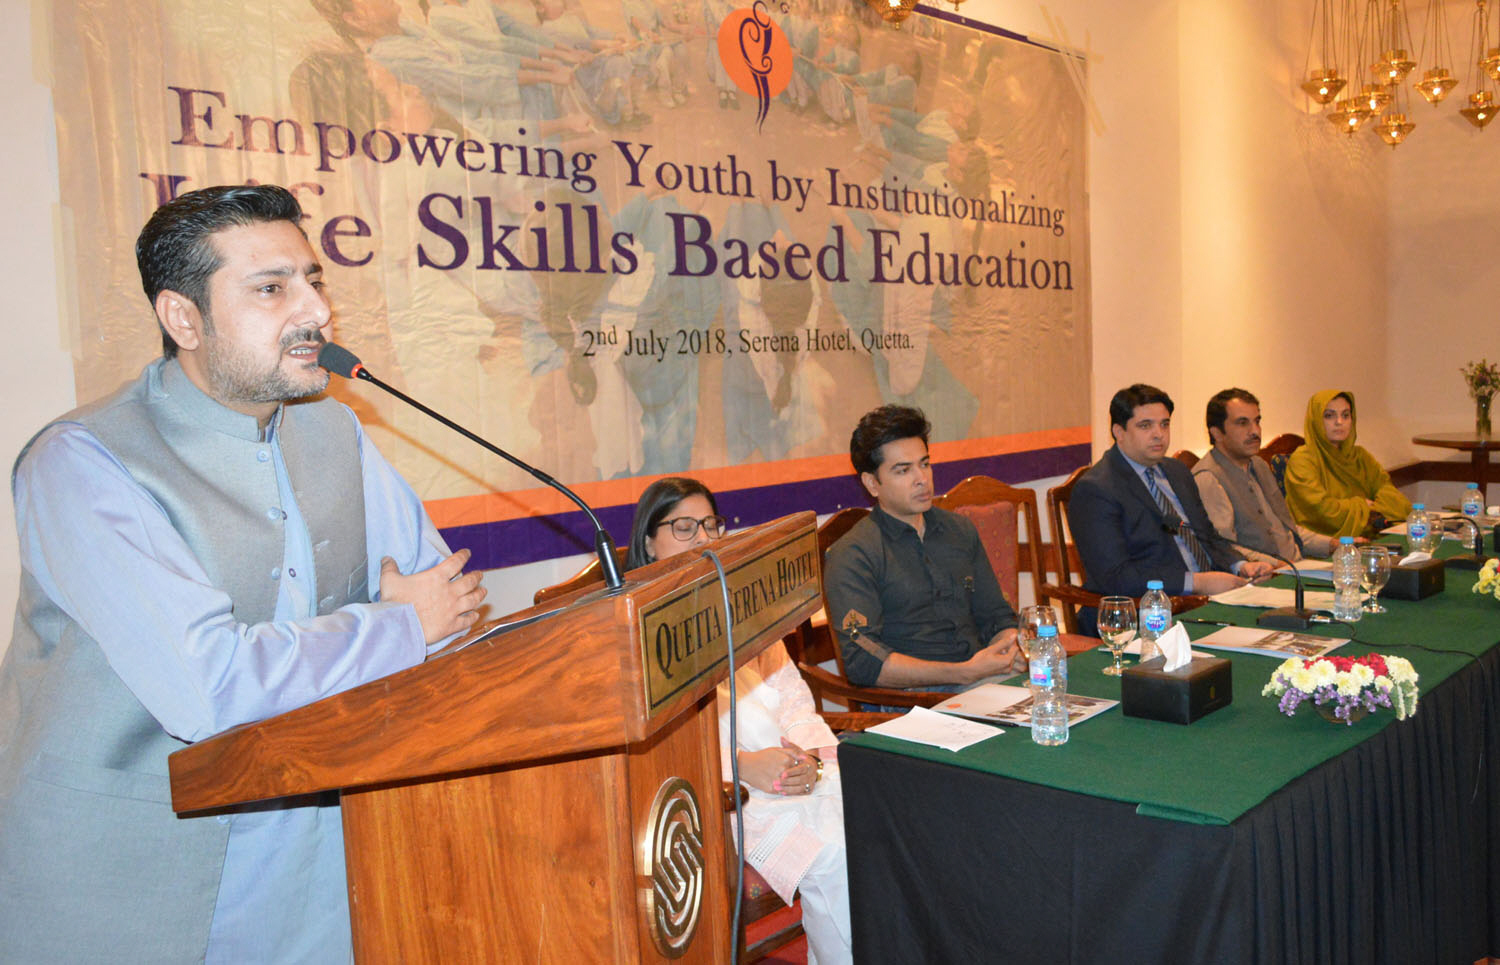 caretaker-balochistan-chief-minister-alauddin-marri-addresses-the-audience-not-seen-during-the-event-photo-express